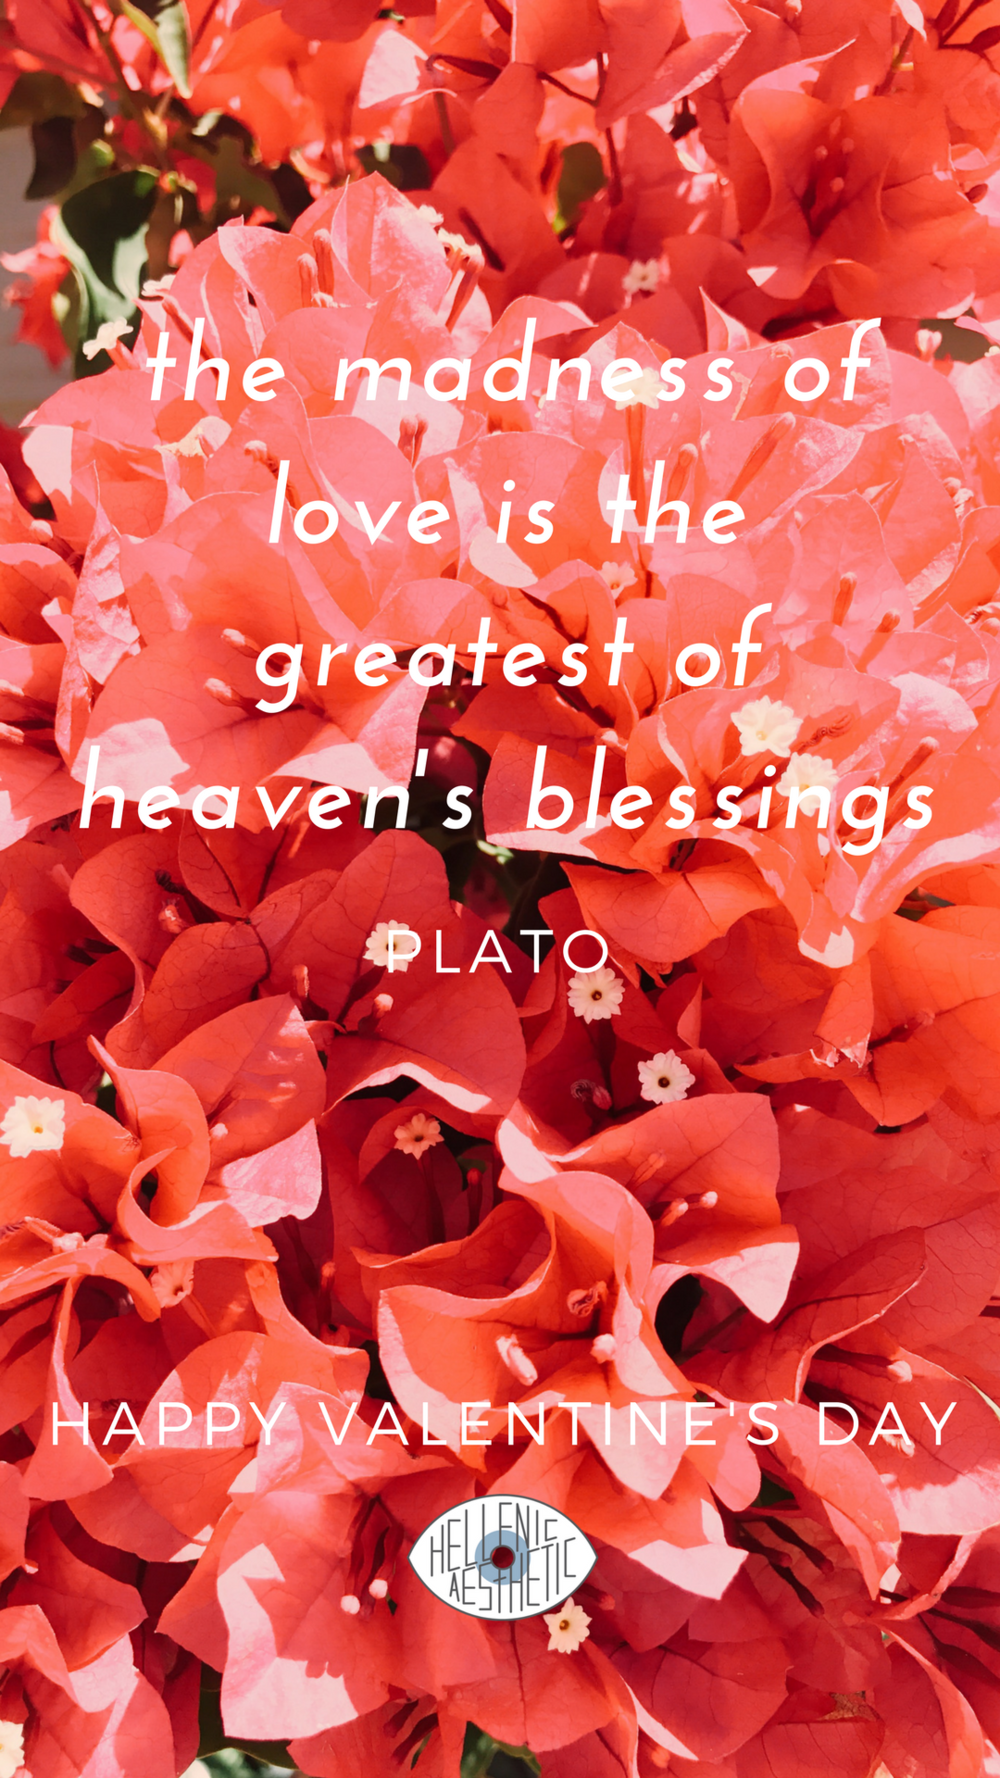 plato quote.png